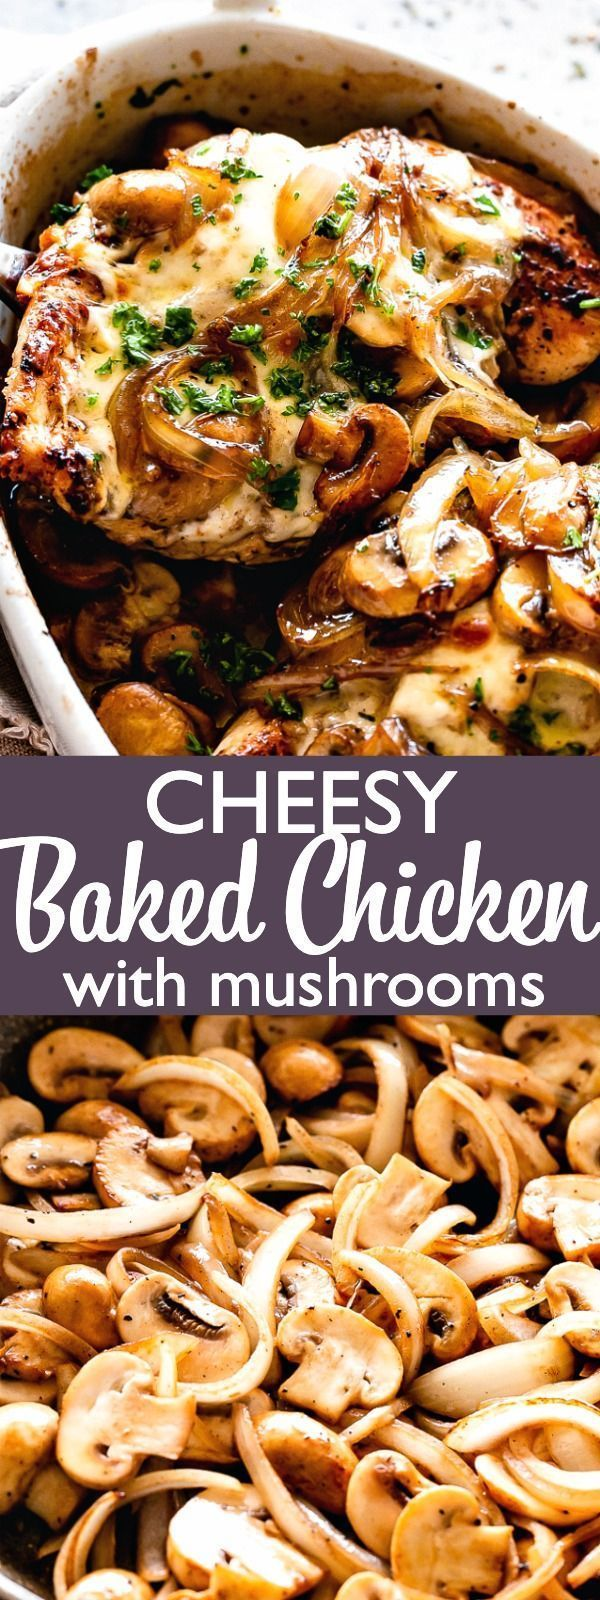 Easy Cheesy Baked Chicken Breasts with Mushrooms